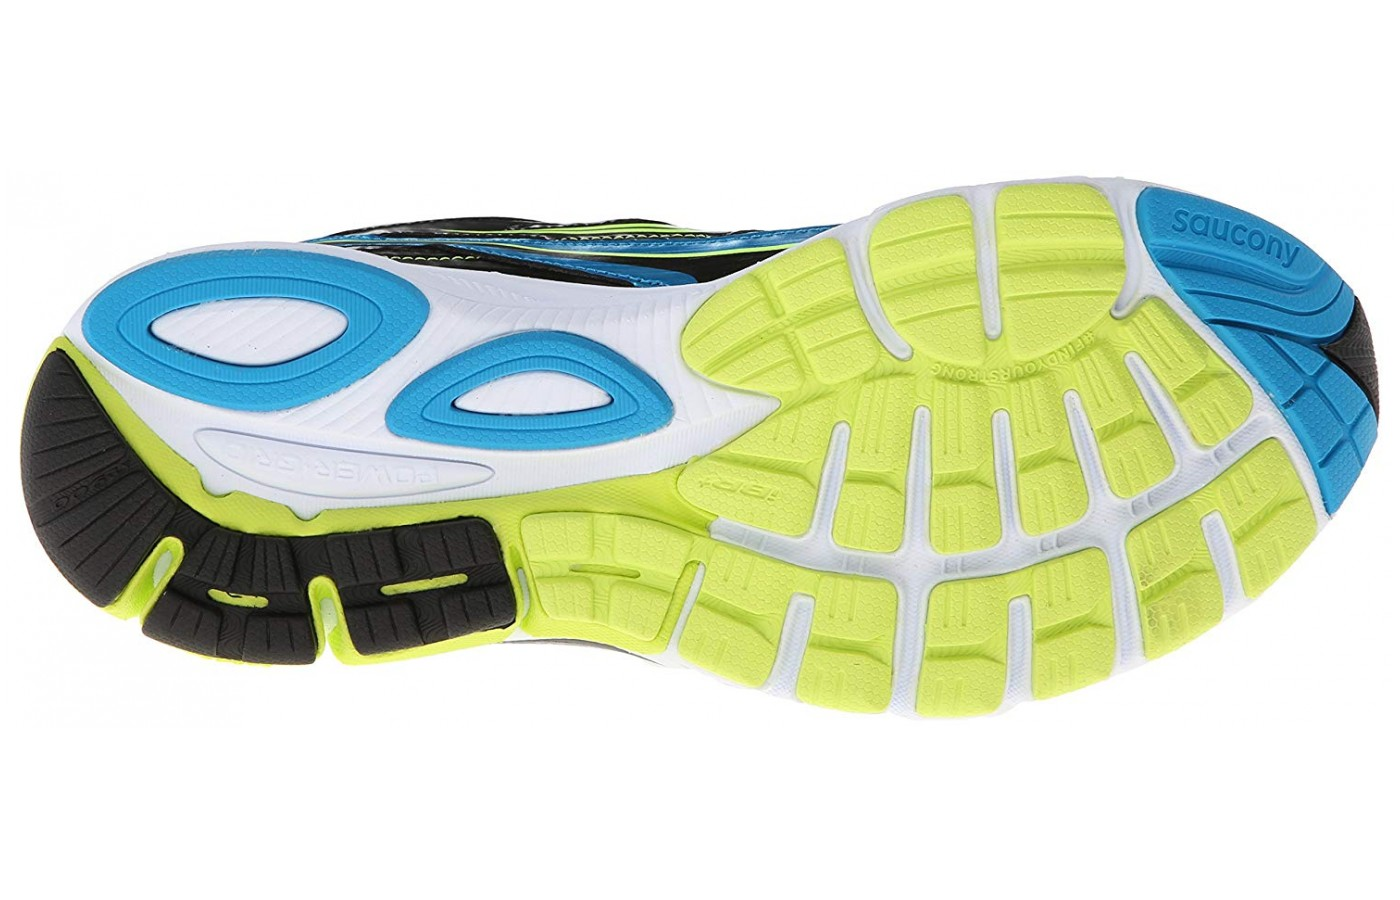 The Ride 7 utilizes a special outsole rubber that makes it a great long-distance shoe.